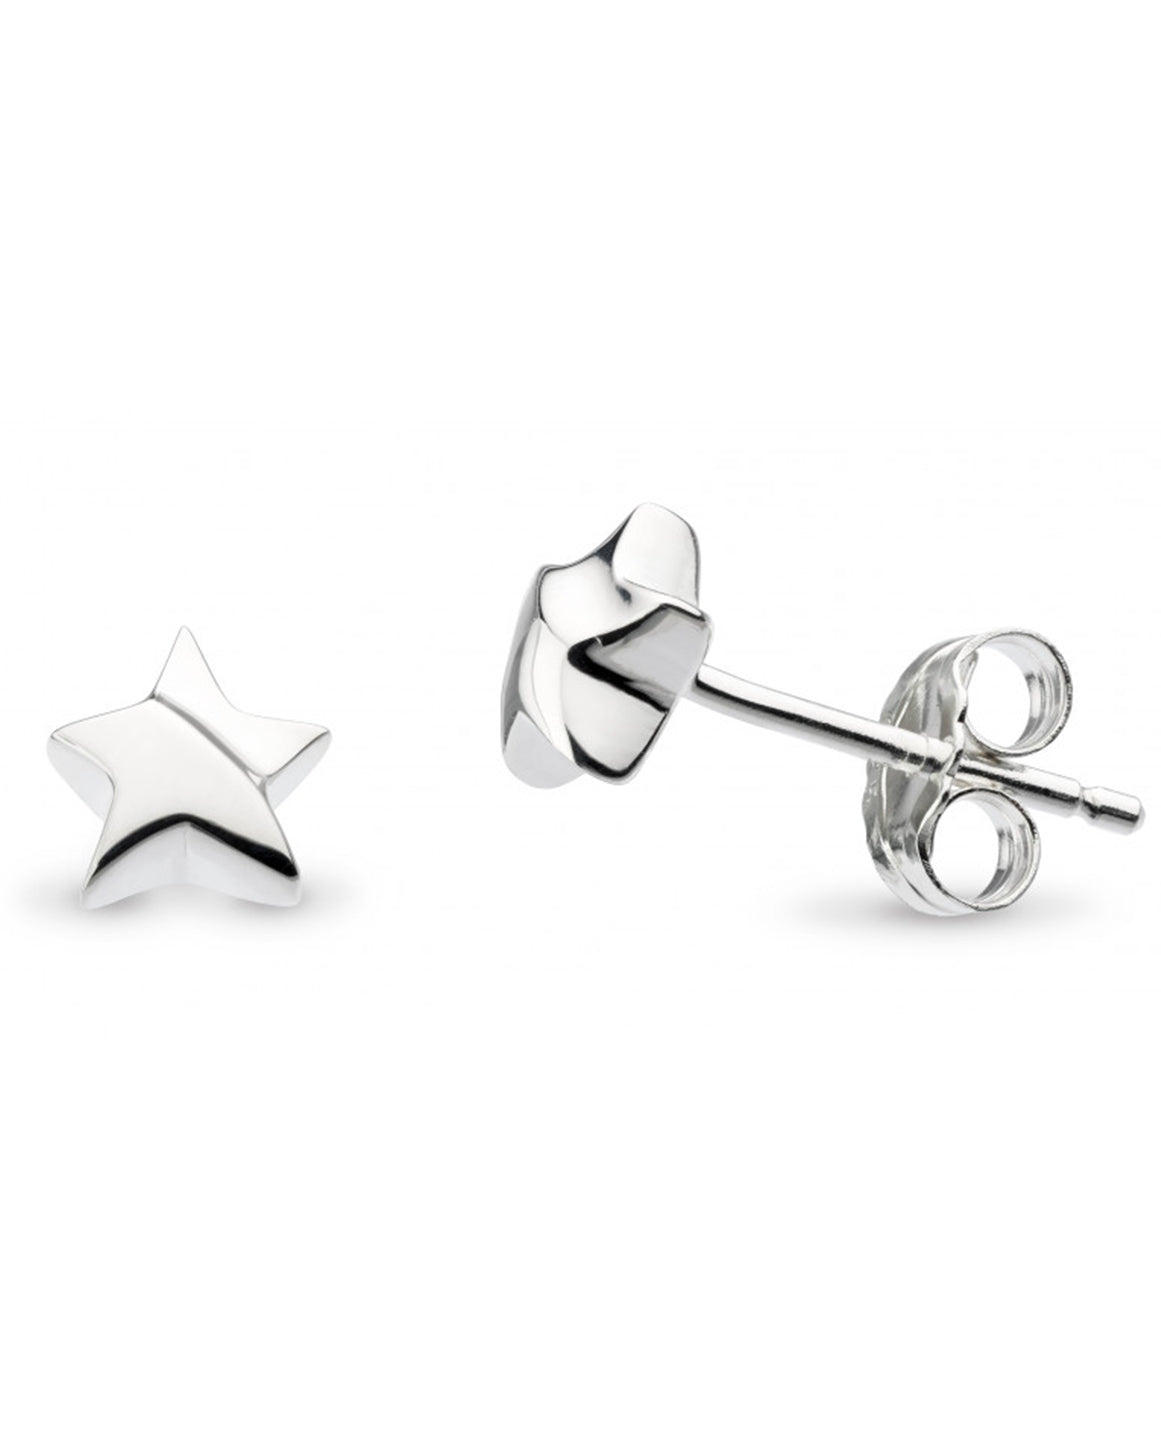 Kit Heath Miniature Shining Star Stud Earrings